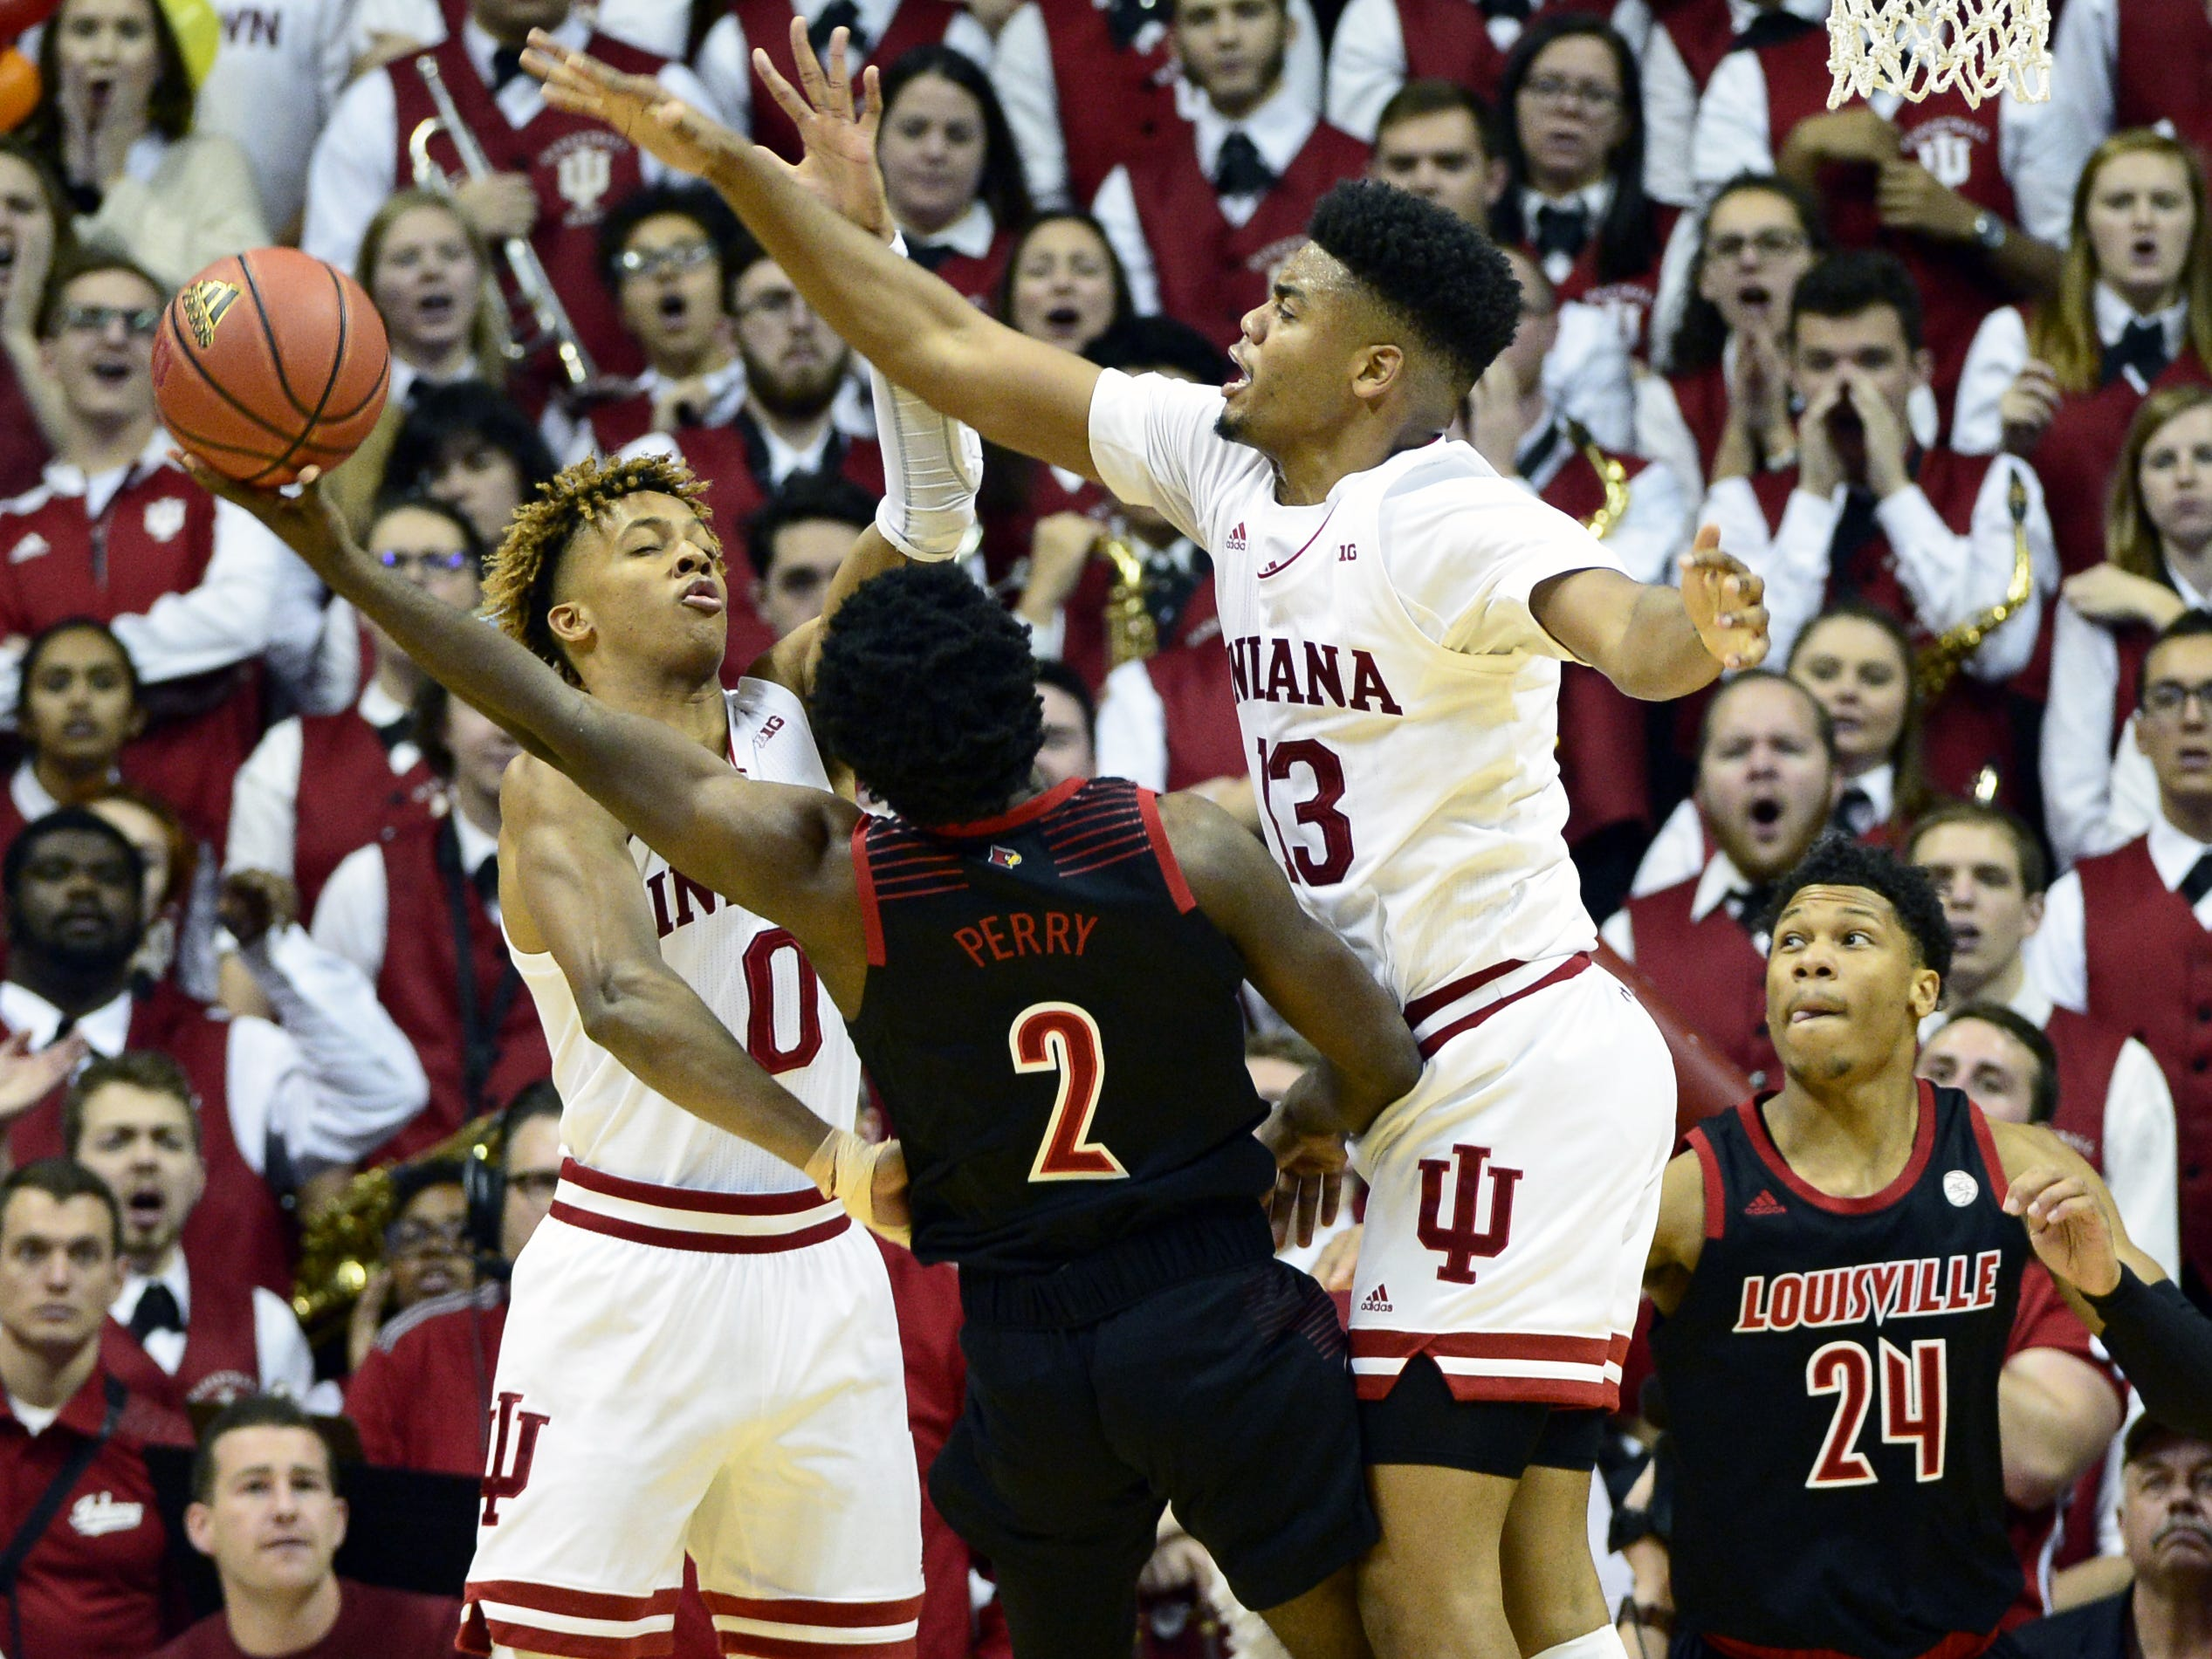 Indiana Hoosiers guard Romeo Langford (0) and Indiana Hoosiers forward Juwan Morgan (13) contest a shot from Louisville Cardinals guard Darius Perry (2) during the game against Louisville at Simon Skjodt Assembly Hall in Bloomington, Ind.